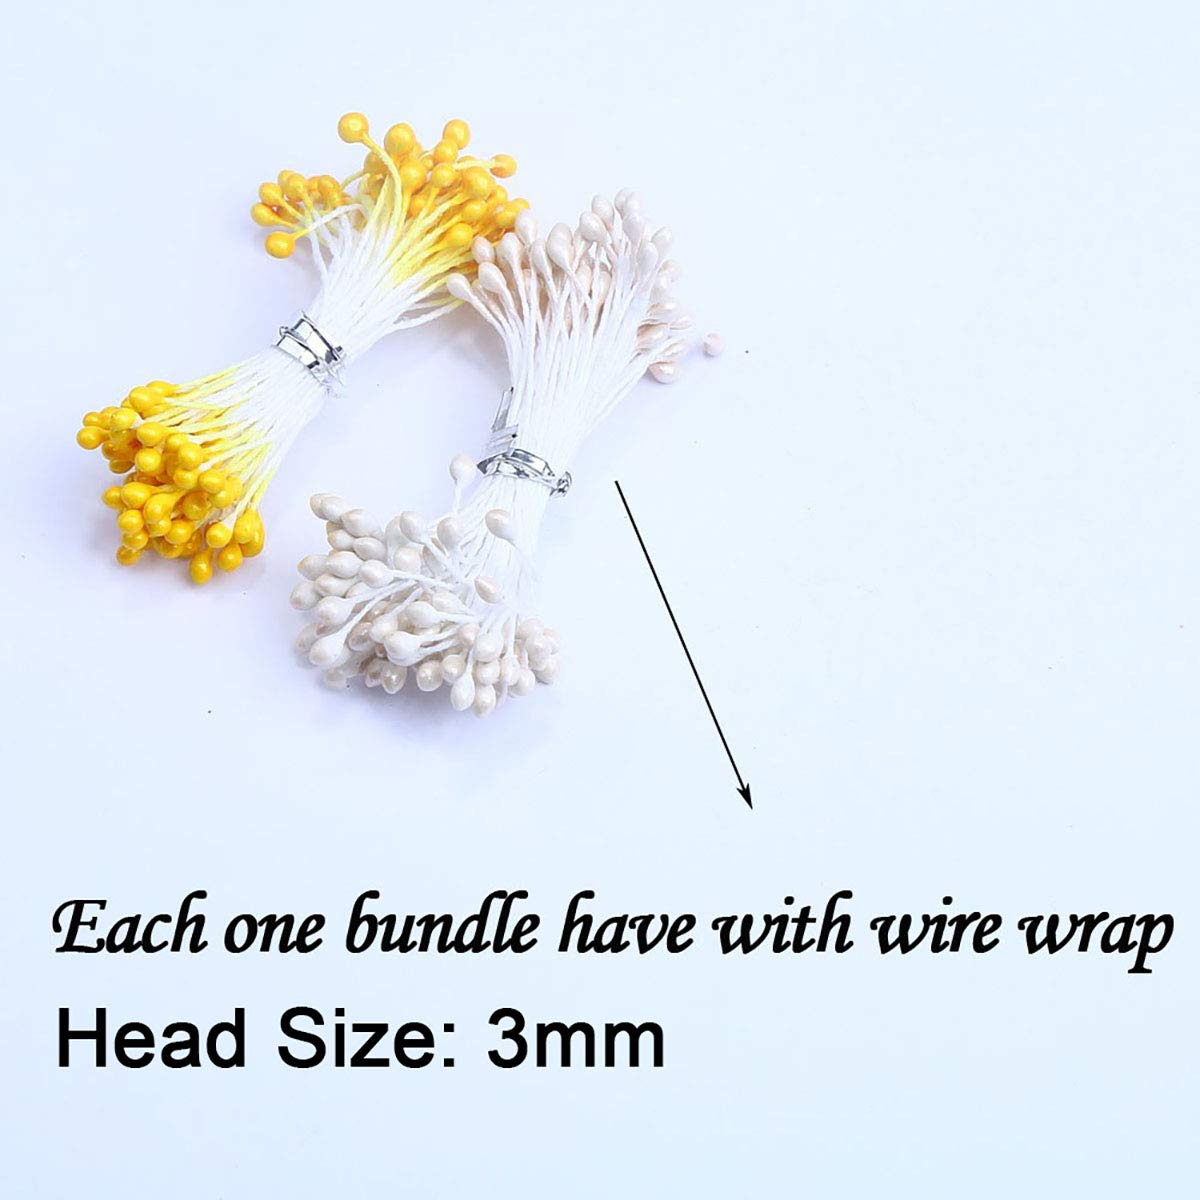 Queenbox 500pcs Double Heads 3mm Pearl Flower Stamen floral Pistil for Sewing Card Making Wedding Decor Craft Making DIY Supply